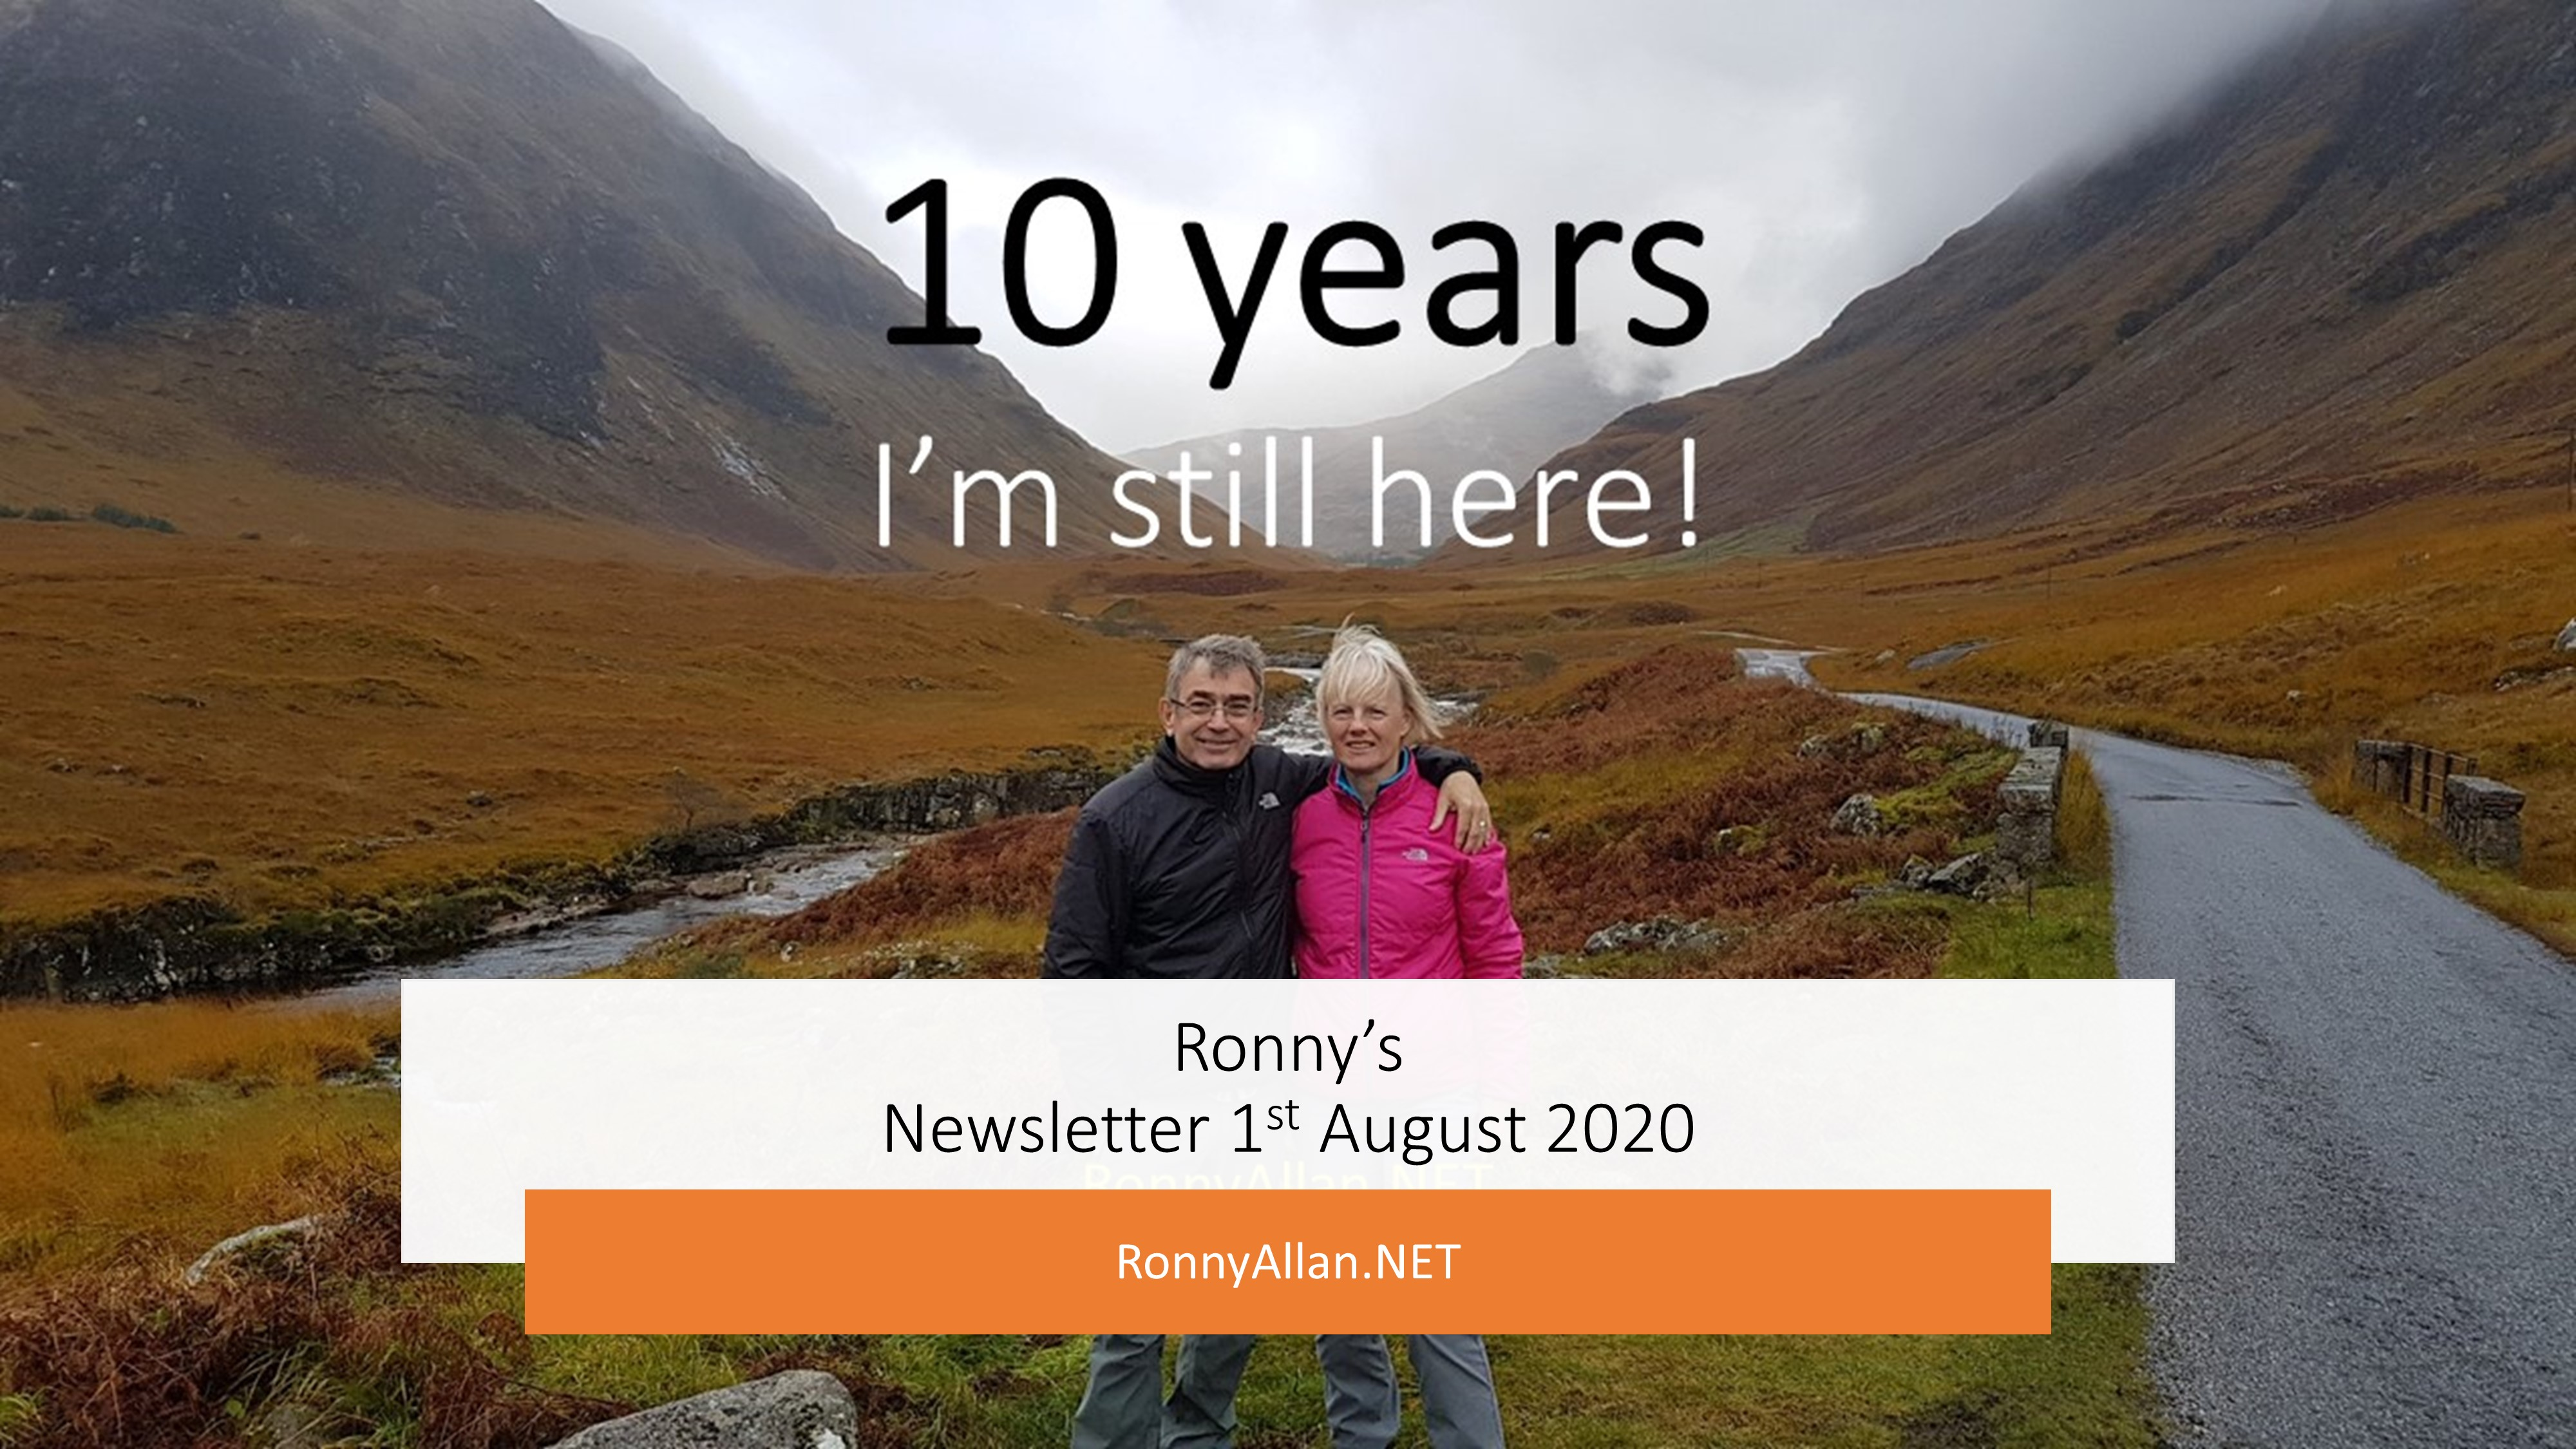 RonnyAllan.NET – Newsletter 1st August 2020